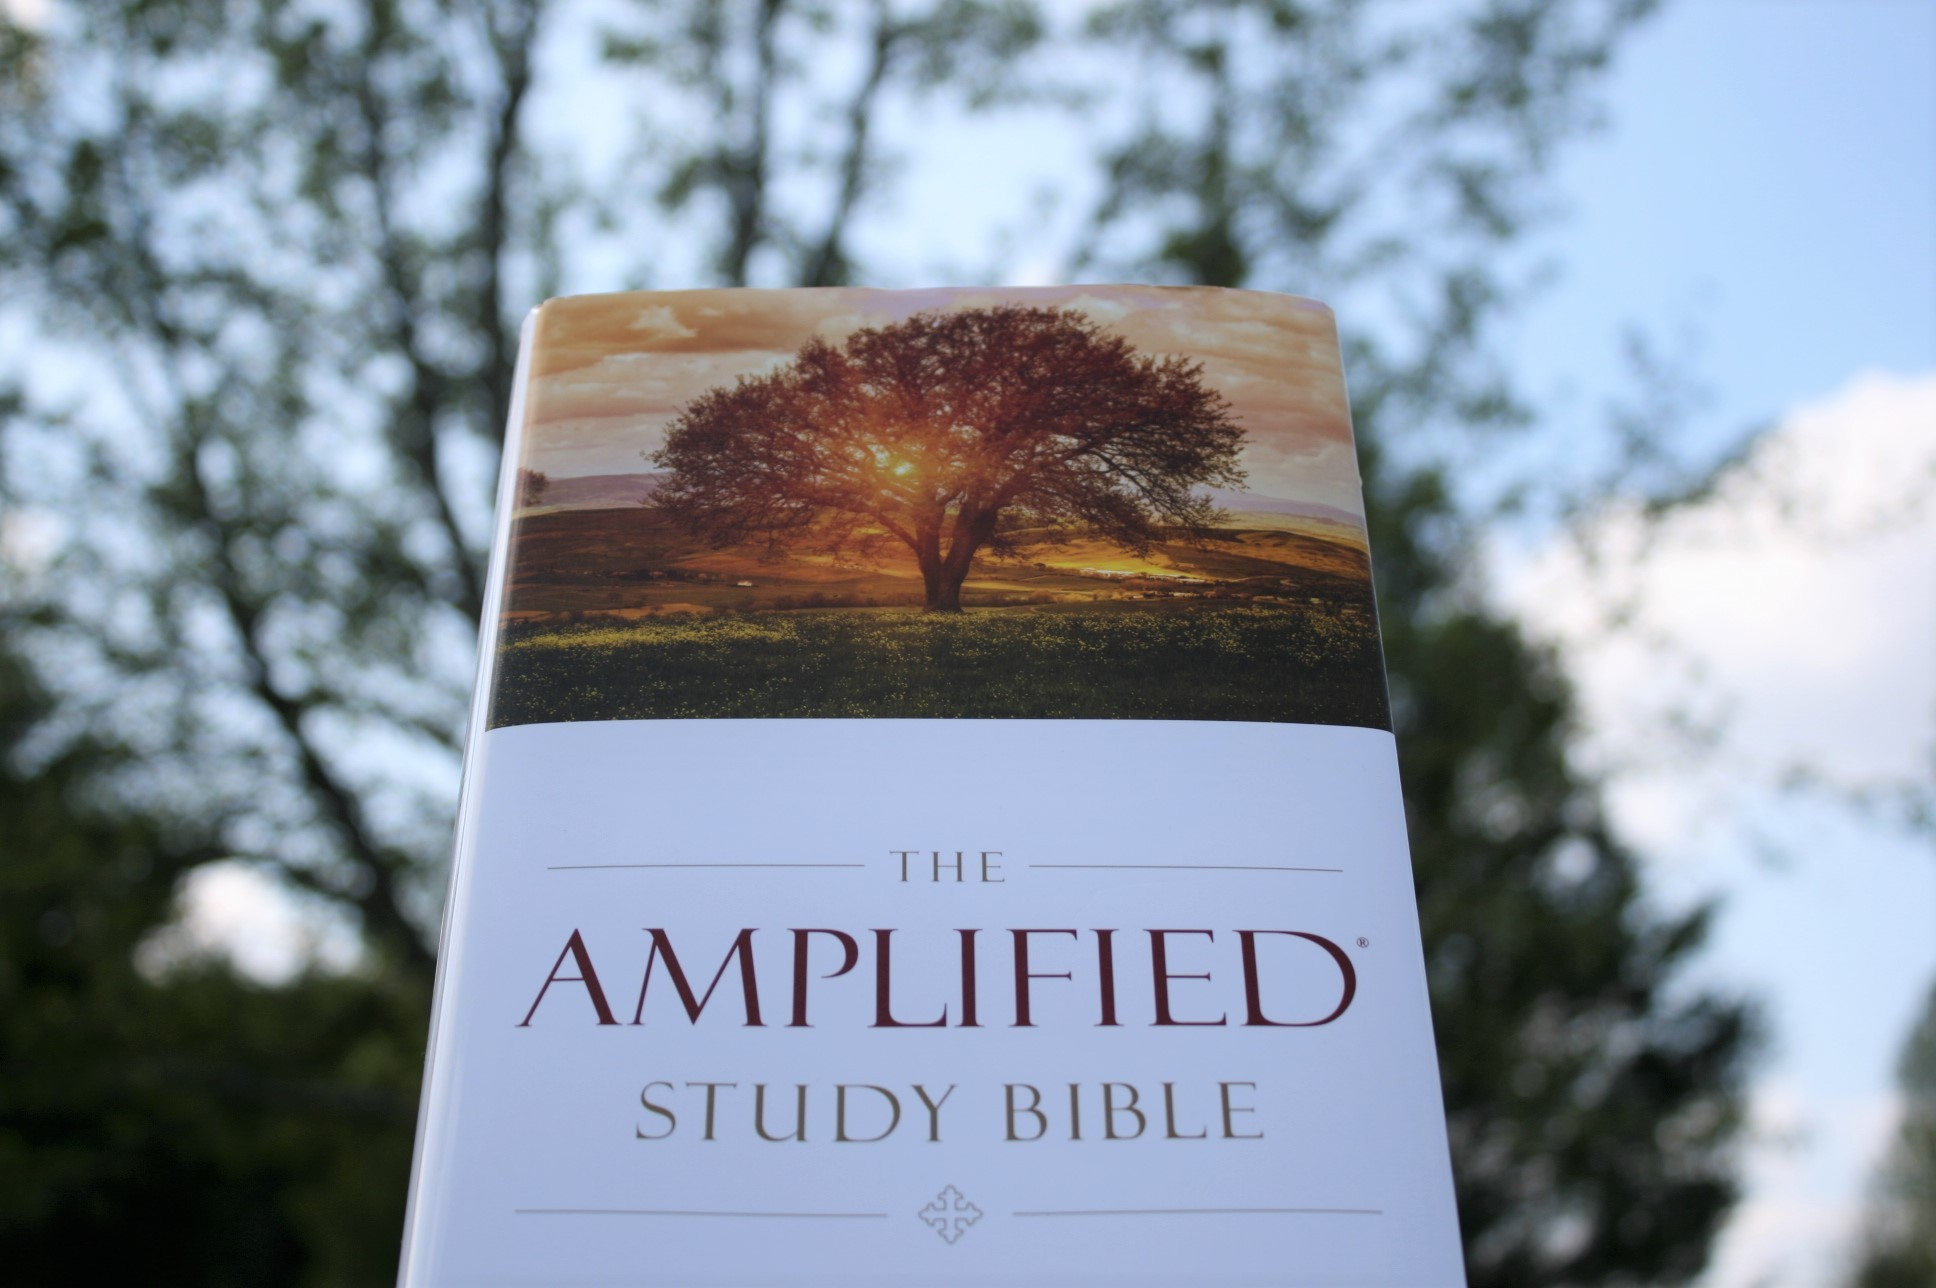 Amplified Study Bible - Olive Tree Bible Software